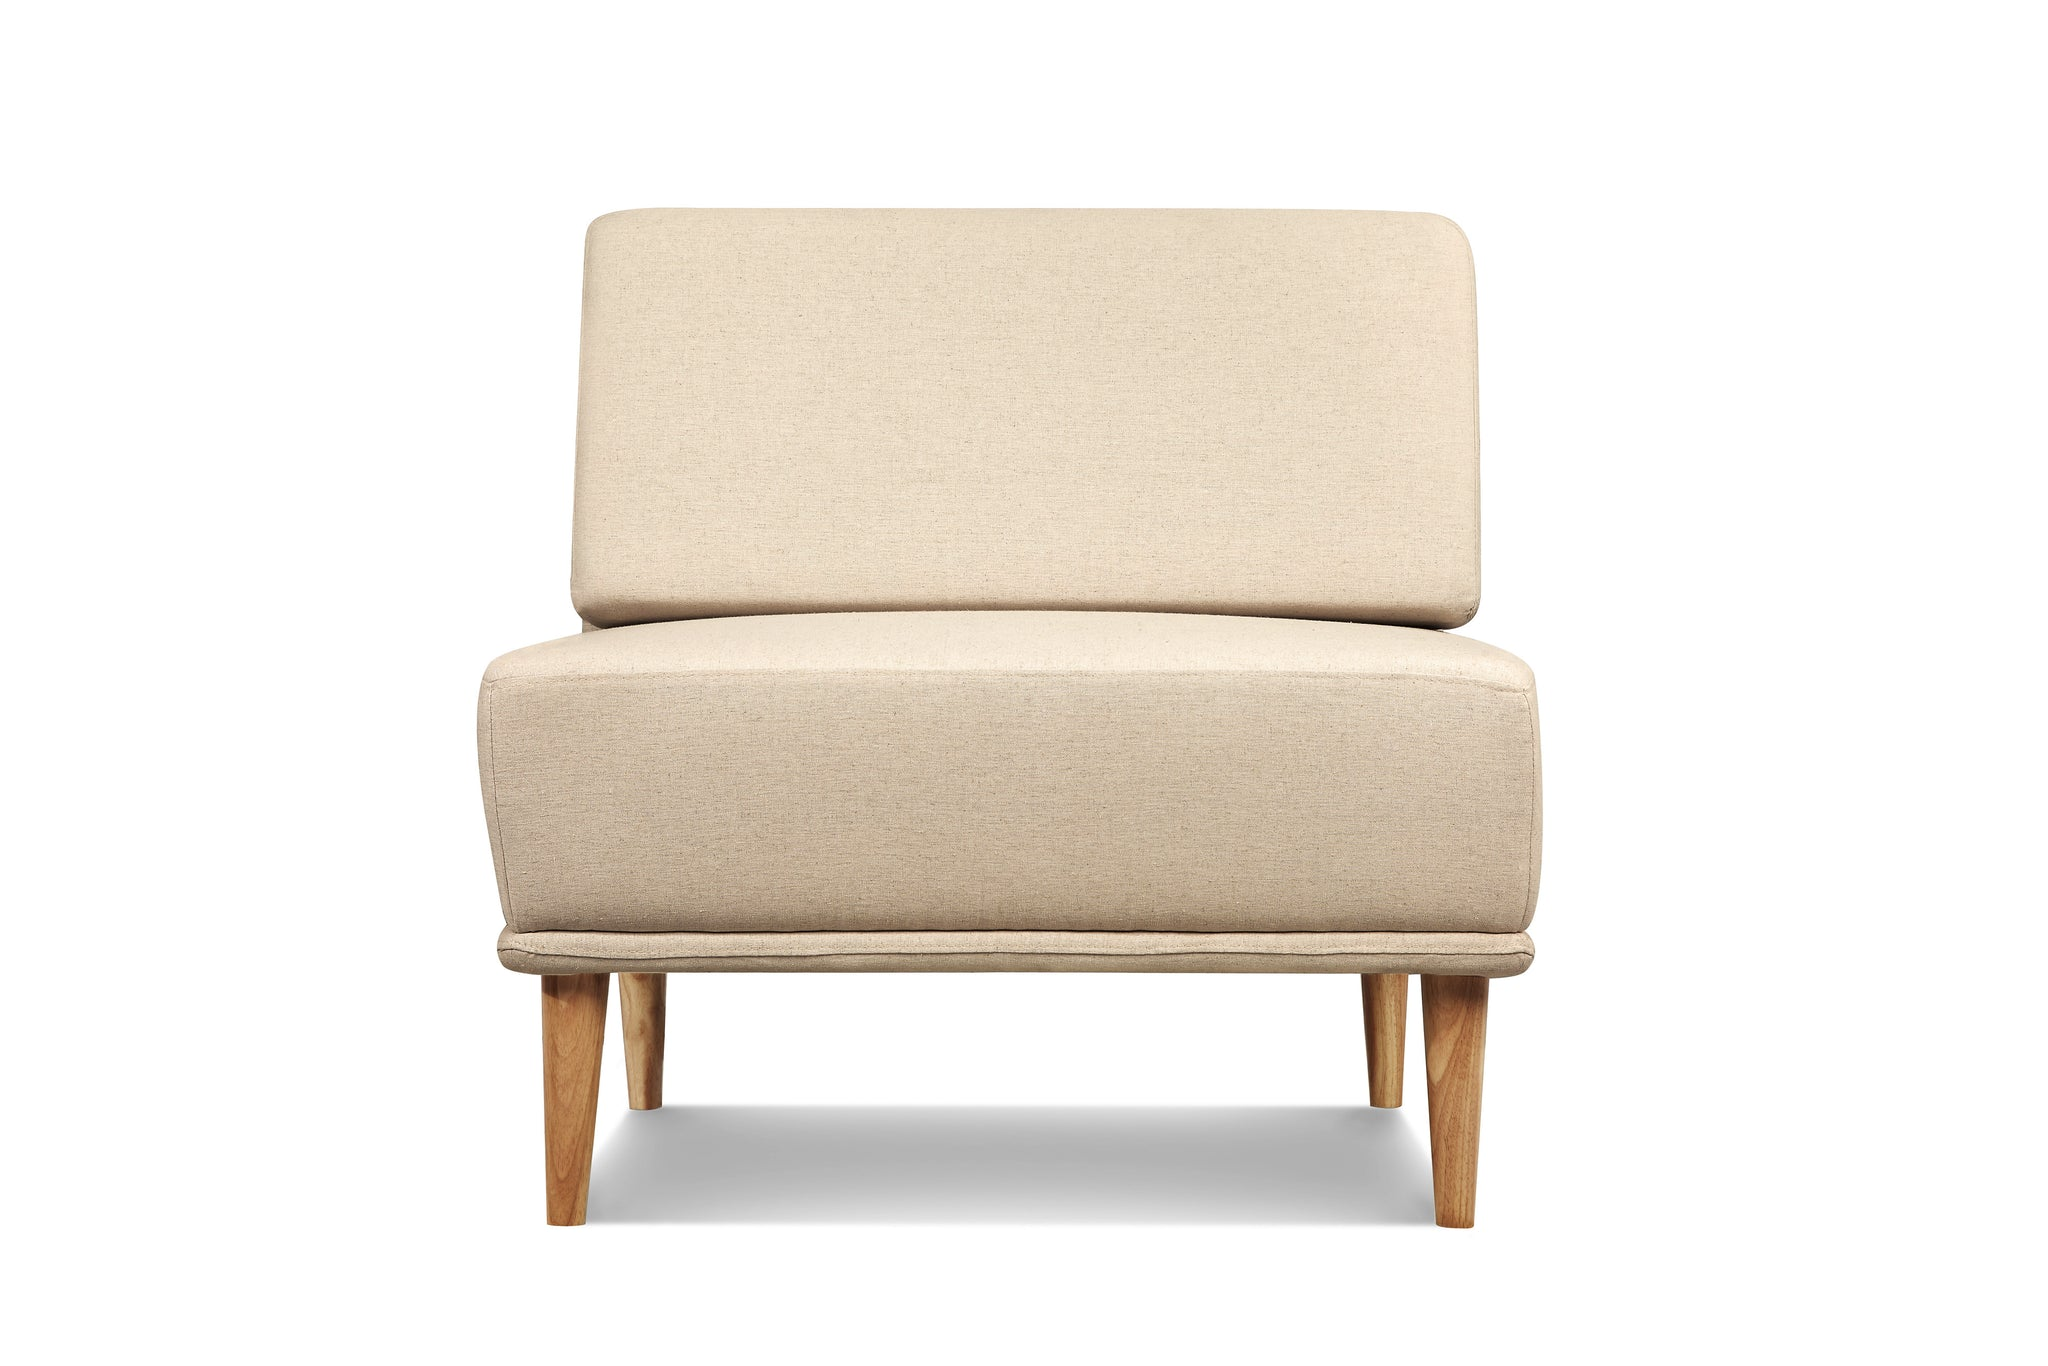 1024LNOAT1,Knook Single Chair In Oatmeal Linen